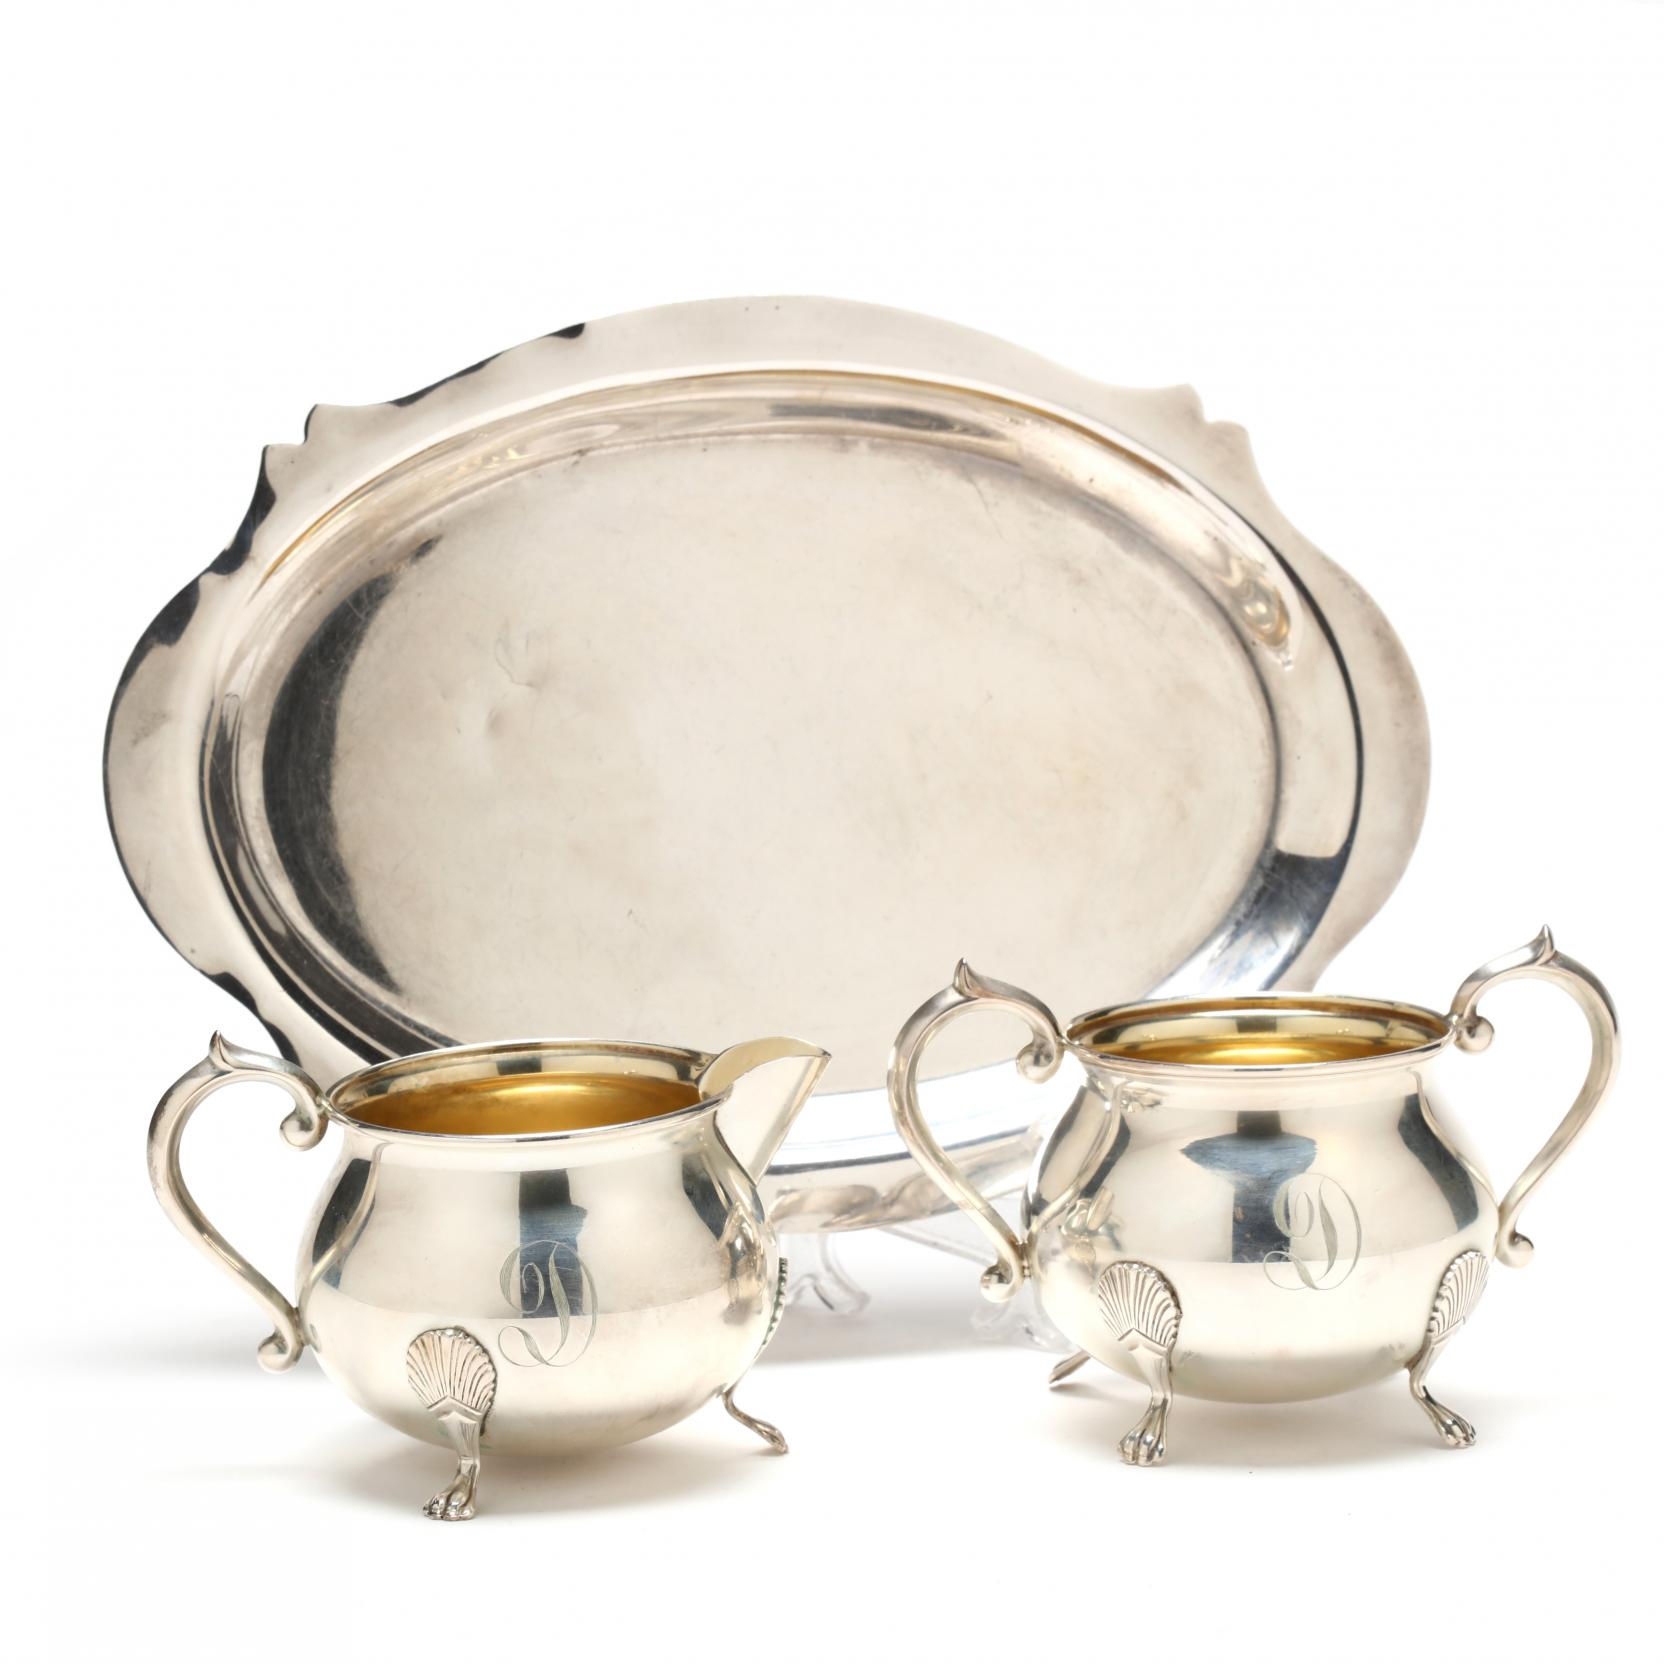 a-parcel-gilt-sterling-silver-sugar-creamer-set